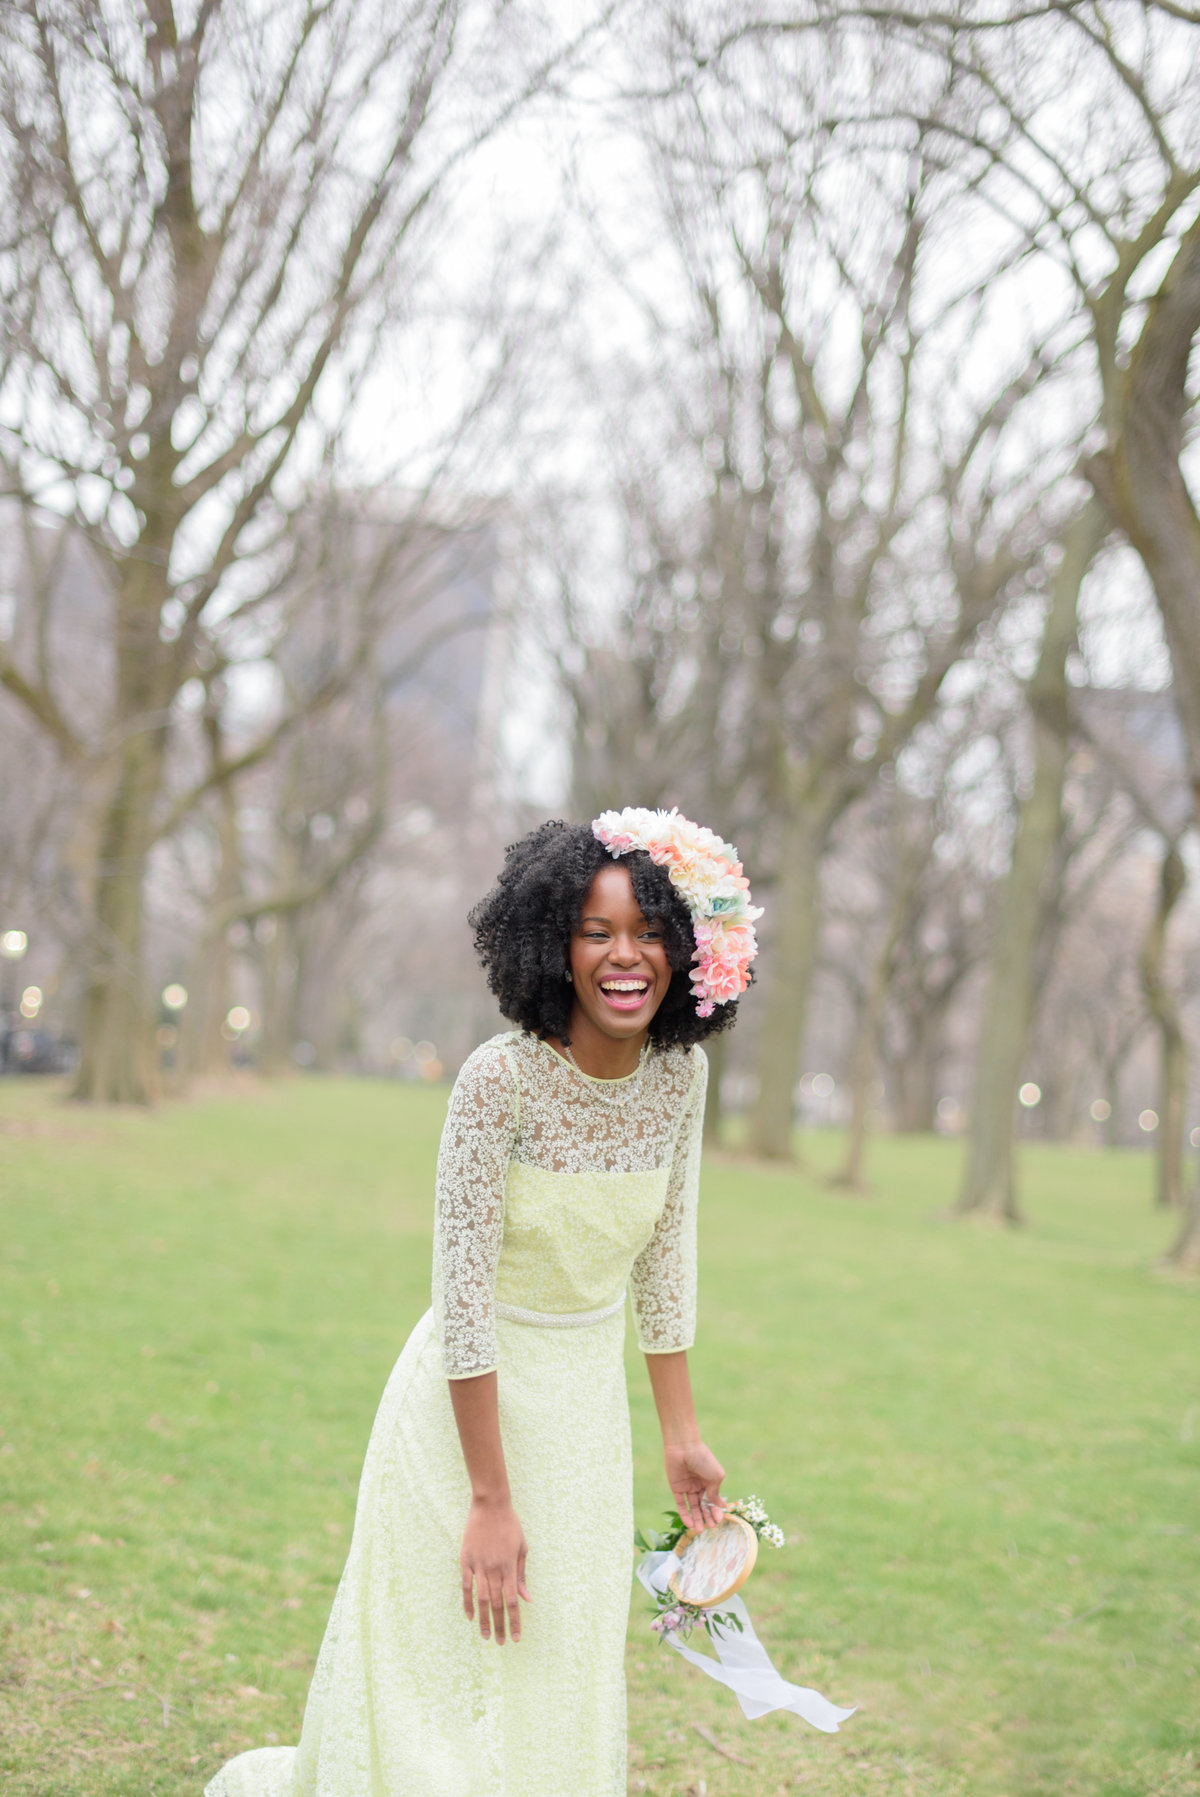 Central Park Wedding Photographer | Bridal Style Inspiration 19